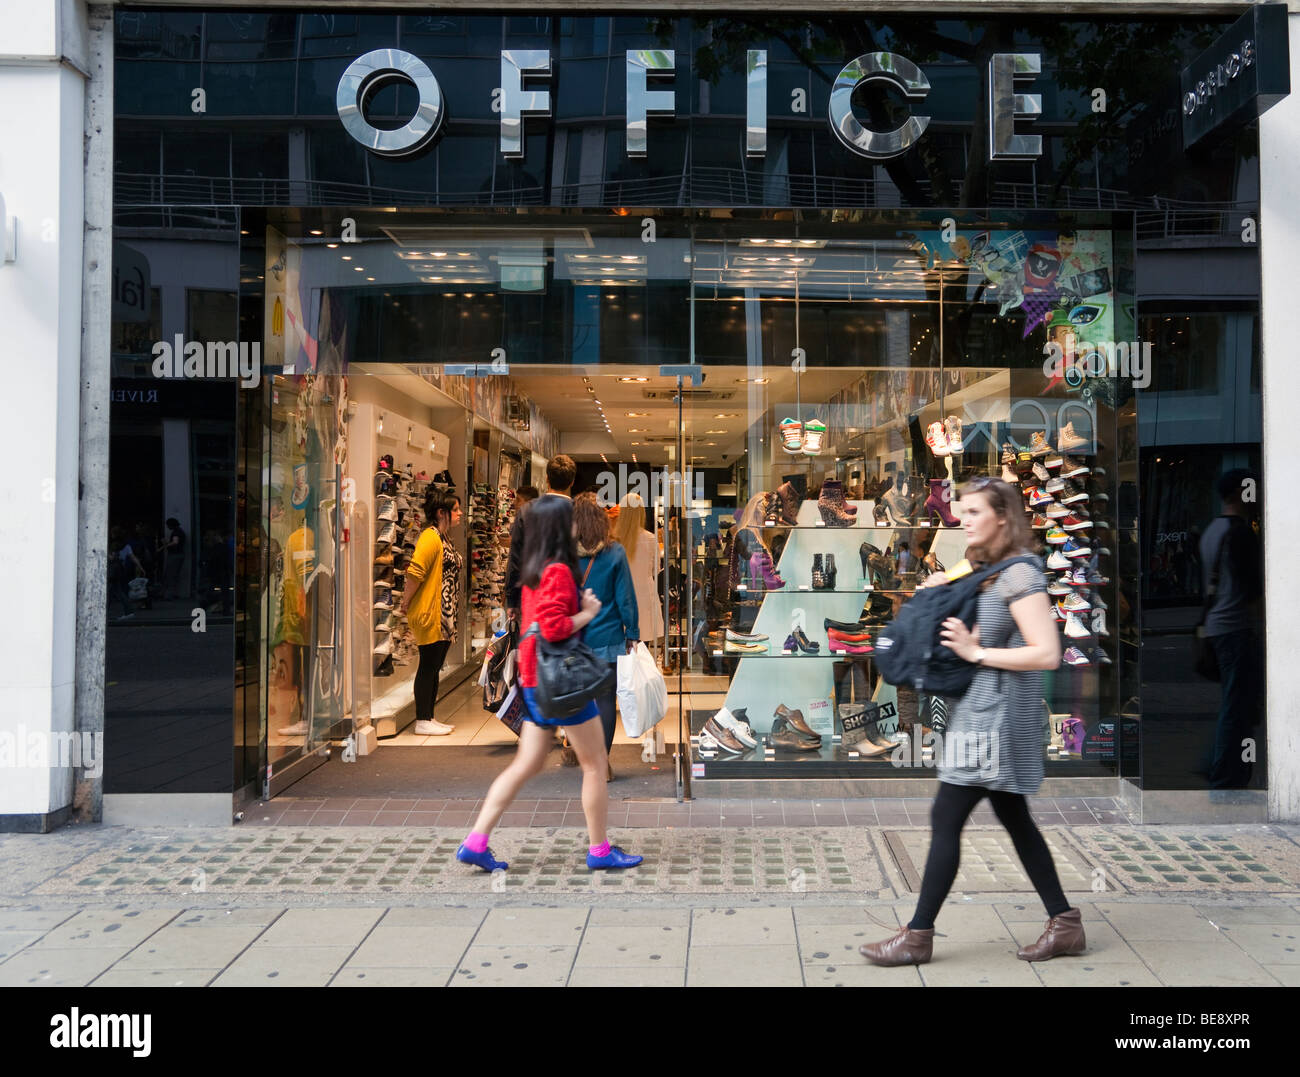 Office Shoe Shop